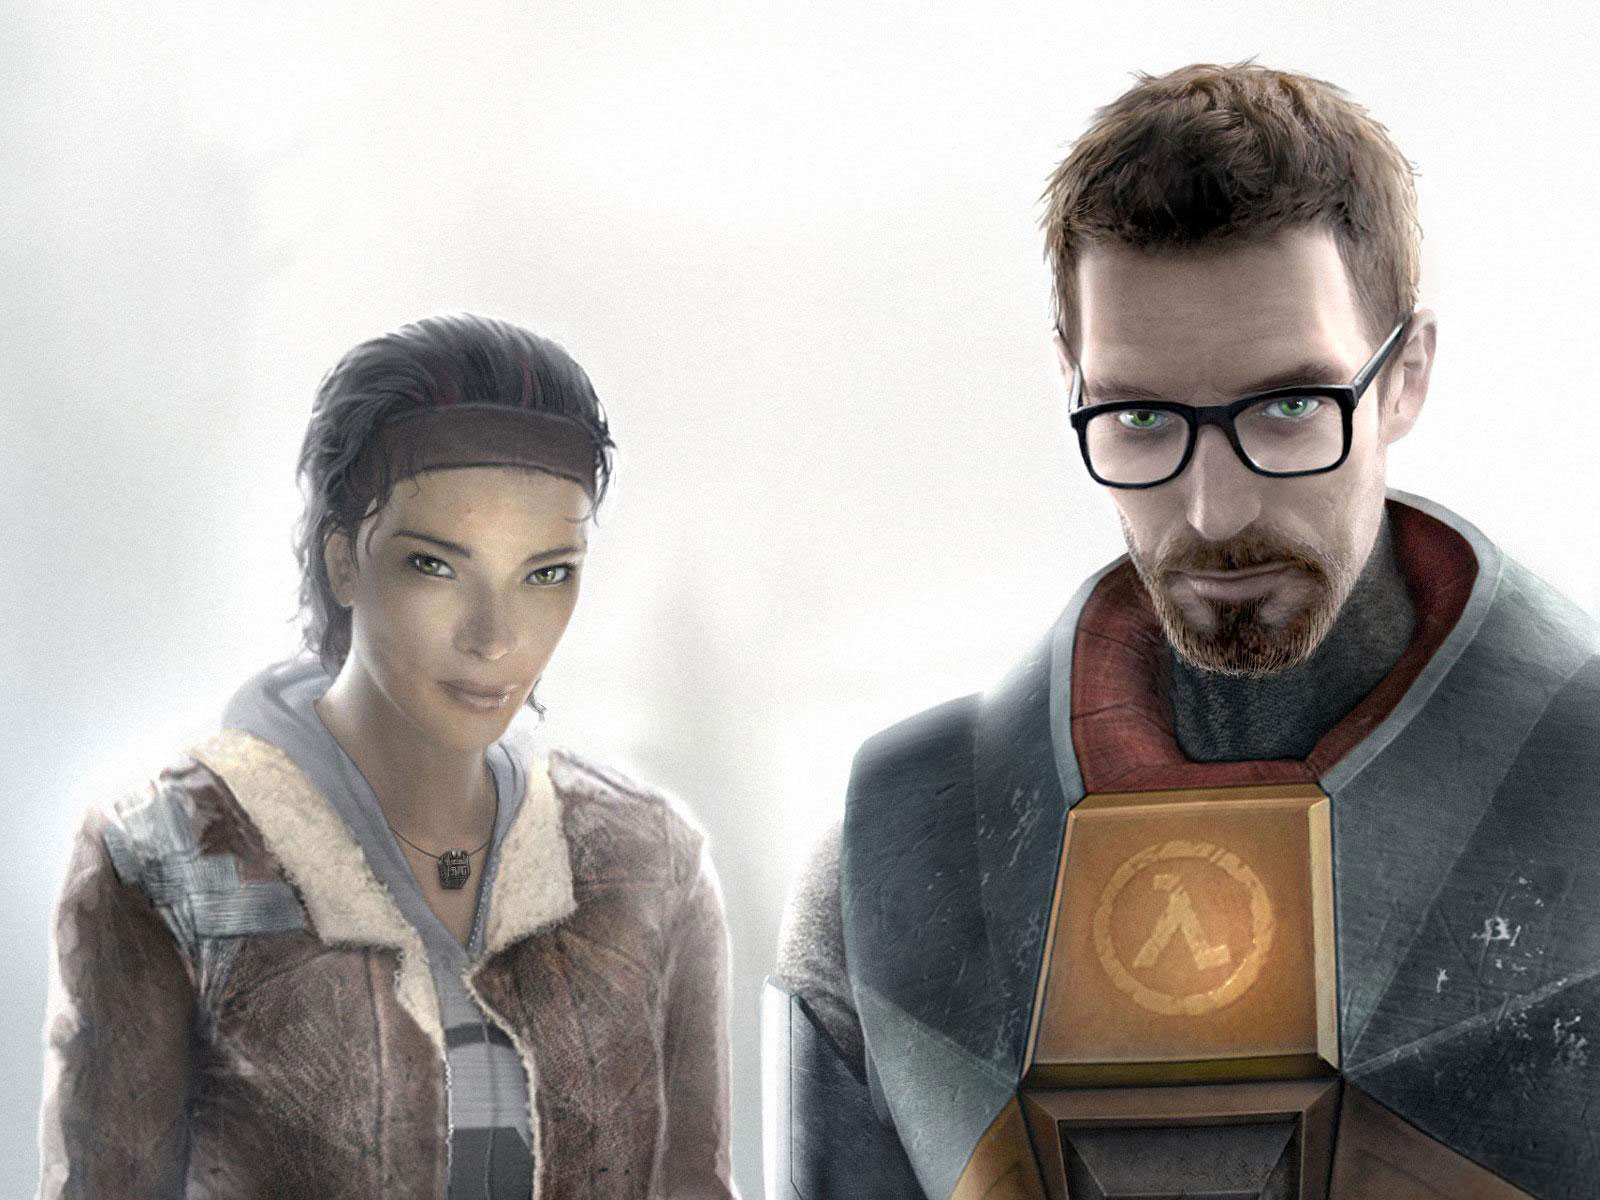 HTC exec apologizes for name-dropping Half-Life in interview